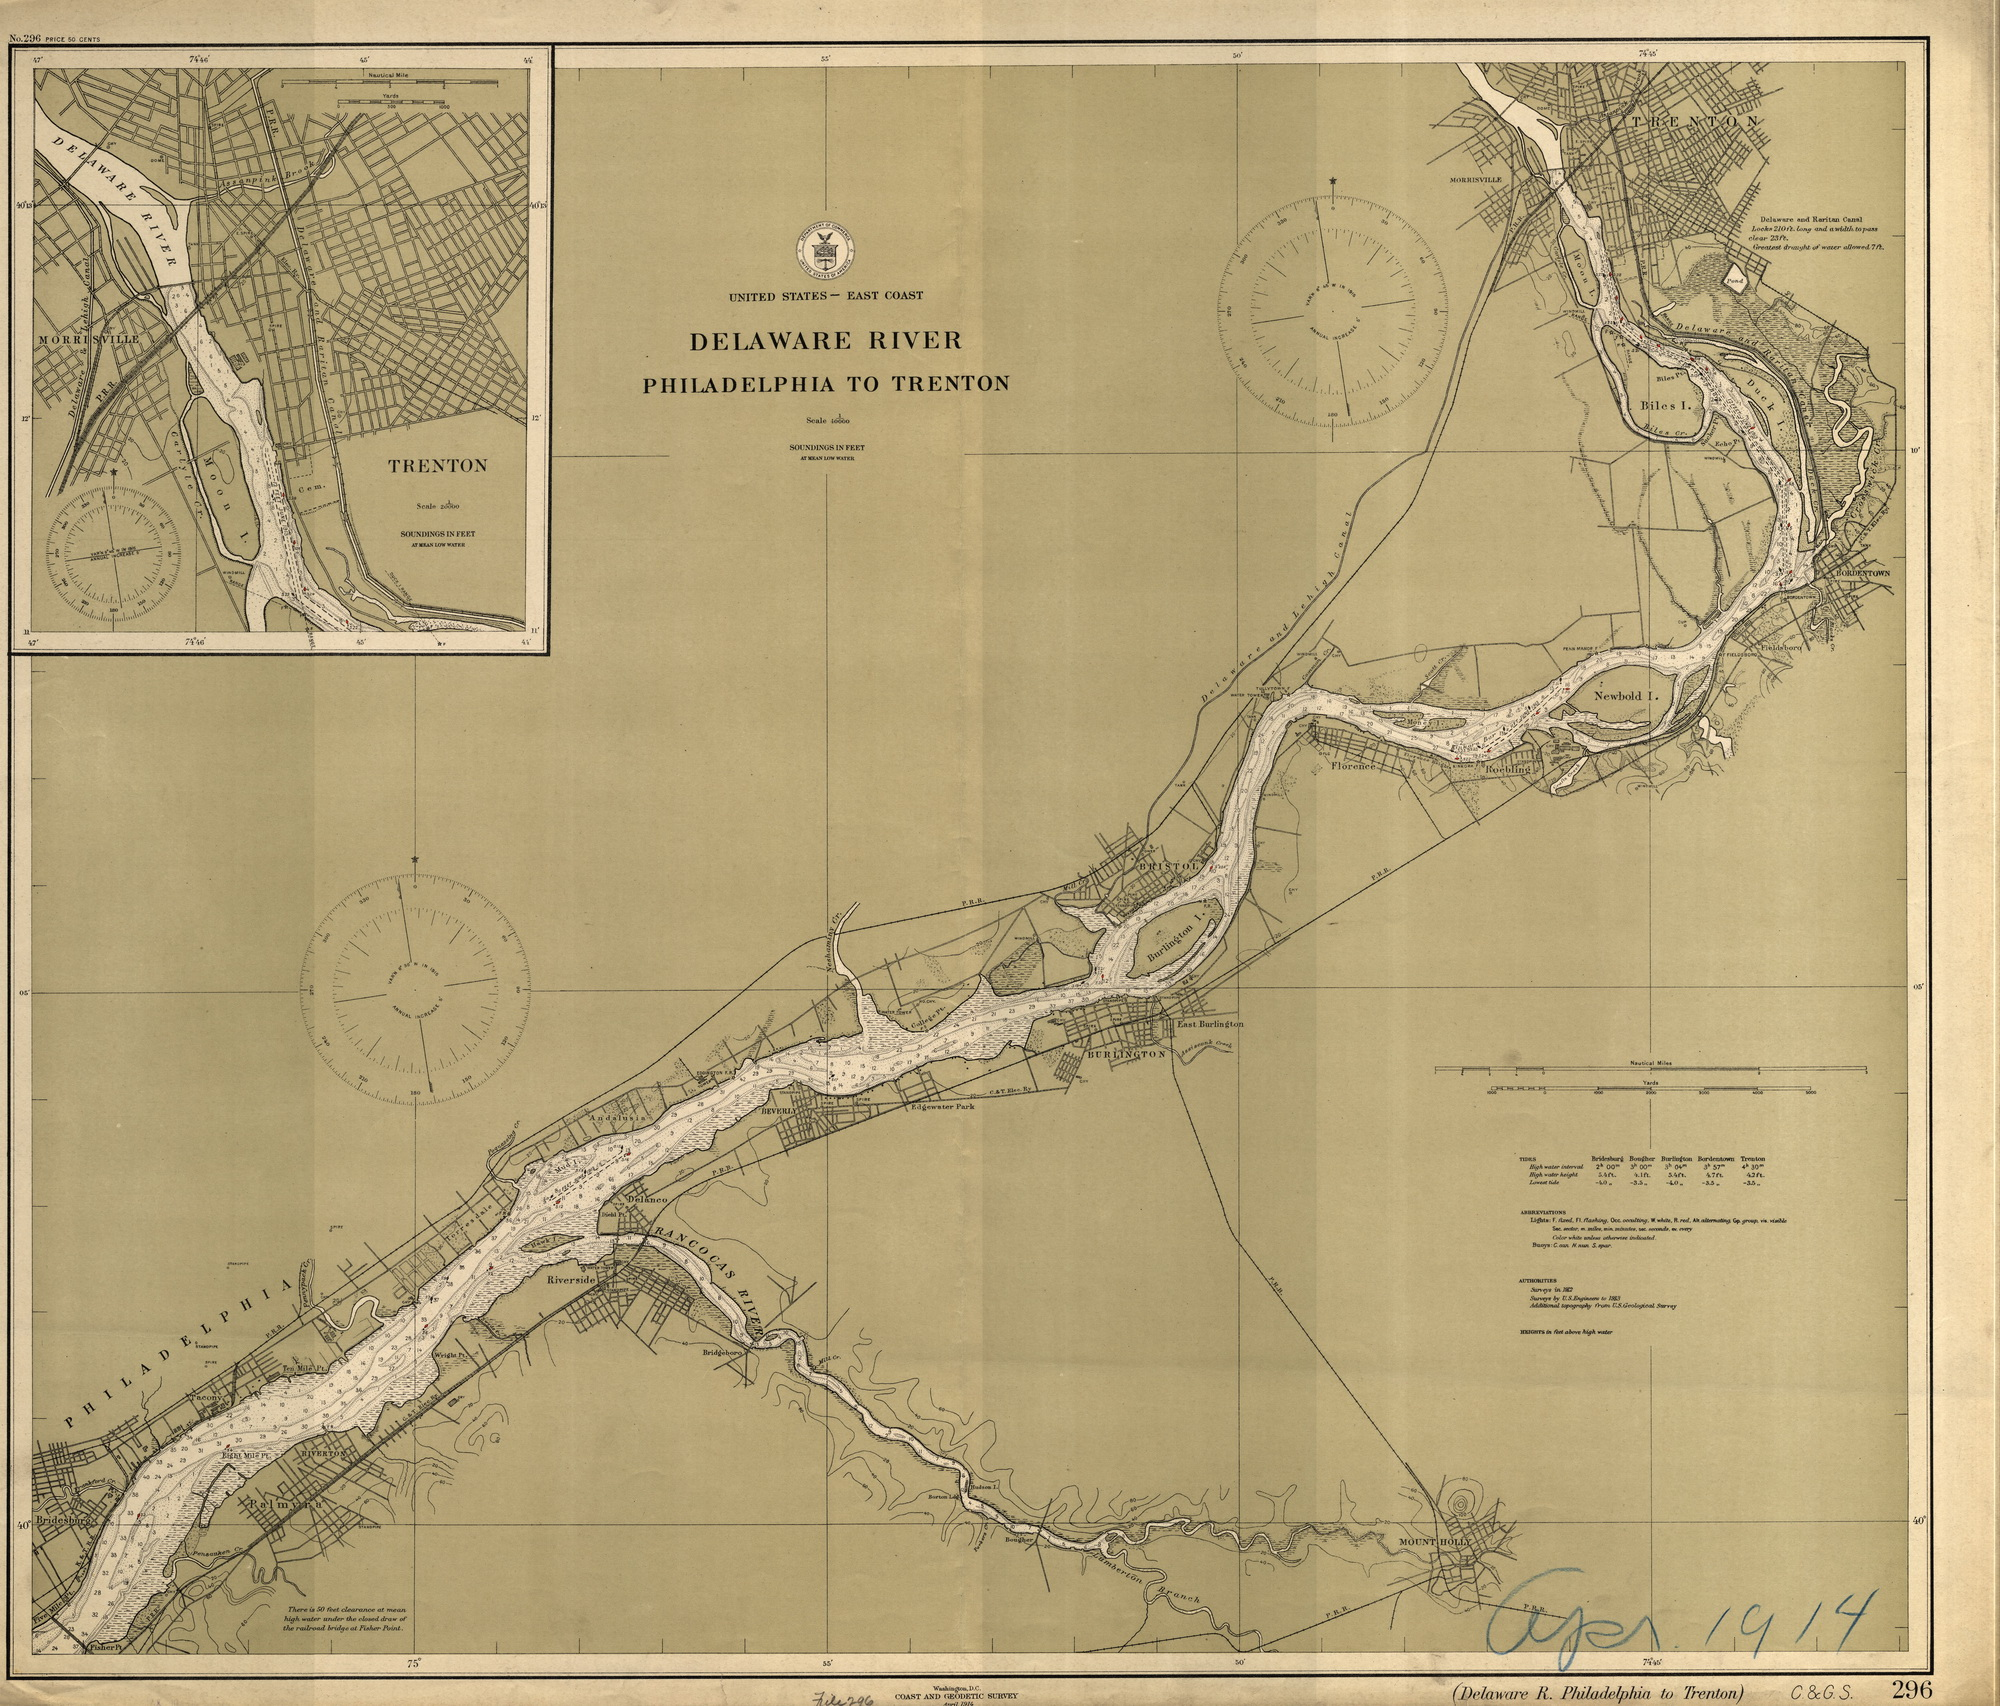 Delaware River Philadelphia to Trenton 1914 - Old Map Nautical Chart on map of mullica township nj, map of lawnside nj, map of farmington nj, map of cliffwood beach nj, map of stafford twp nj, map of pedricktown nj, map of west long branch nj, map of wood-ridge nj, map of hightstown nj, map of sea island nj, map of new jersey, map of cape may courthouse nj, map of haddon twp nj, map of normandy beach nj, map of lafayette nj, map of hudson nj, map of ewing township nj, map of leonardo nj, map of alexandria nj, map of mount vernon nj,